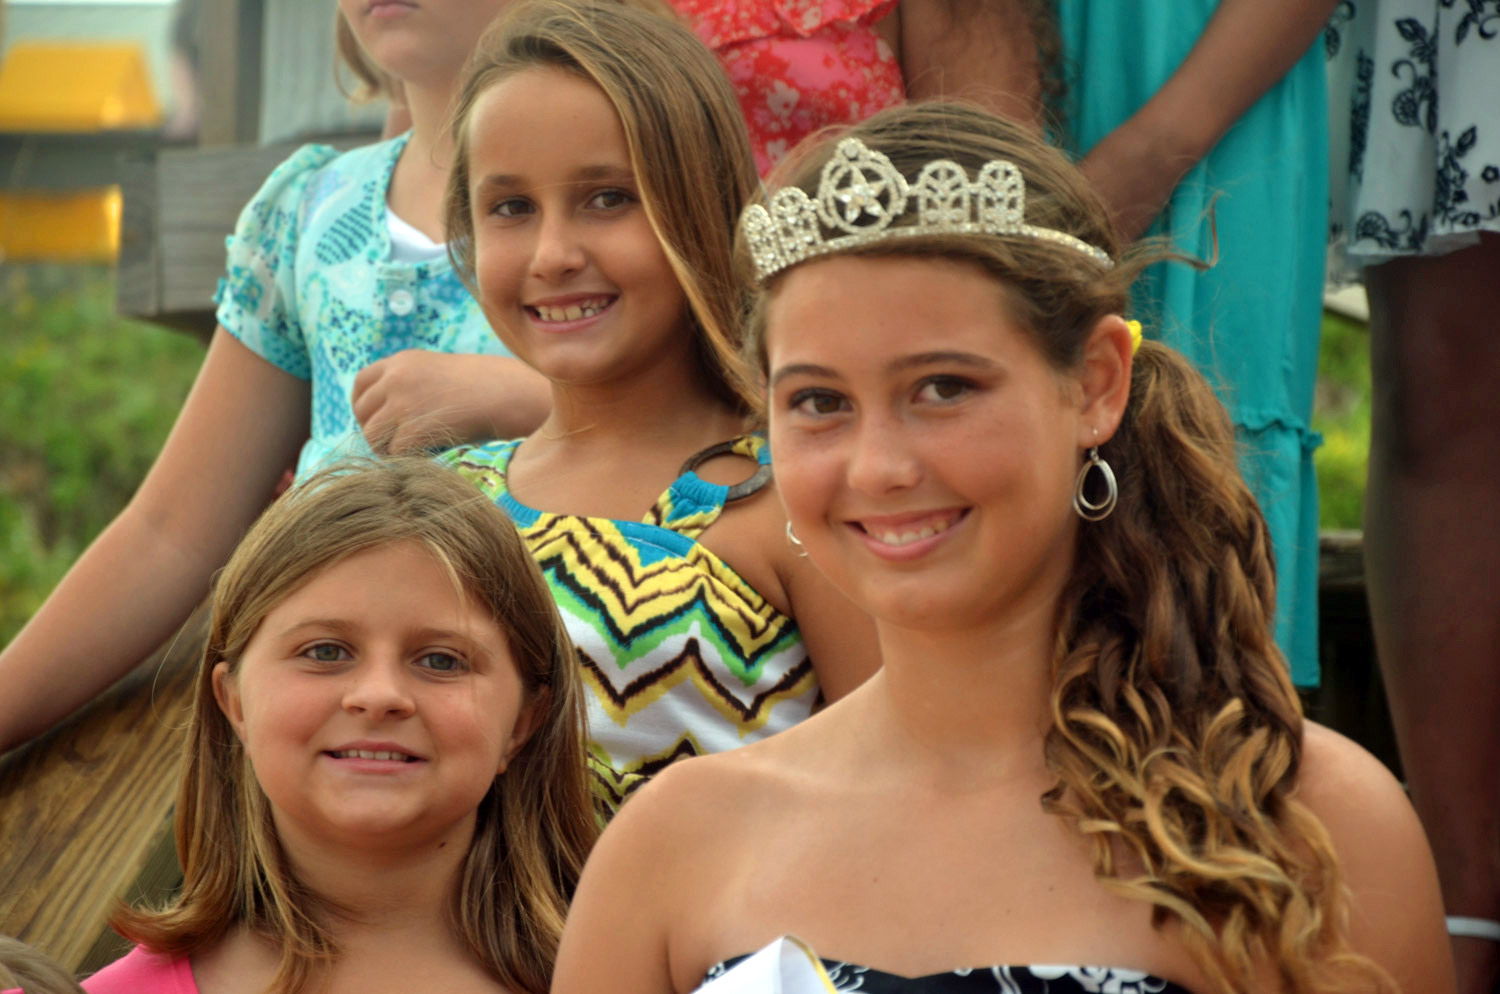 Little Miss Flagler County 2012 Contestants Ages 8 11